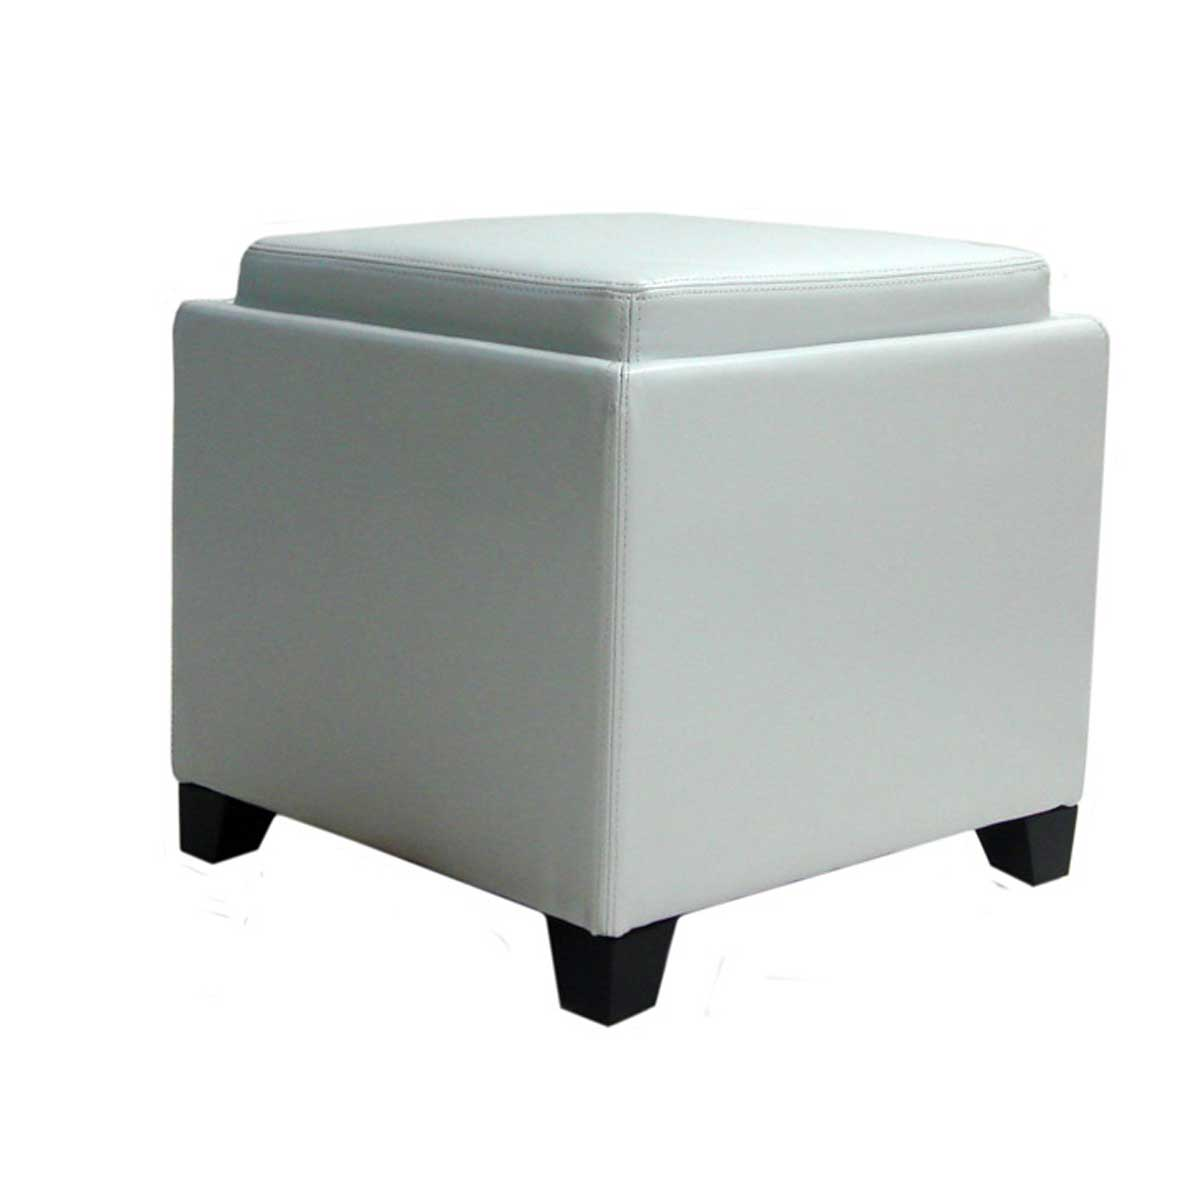 Armen Living Contemporary Storage Ottoman with Tray - White